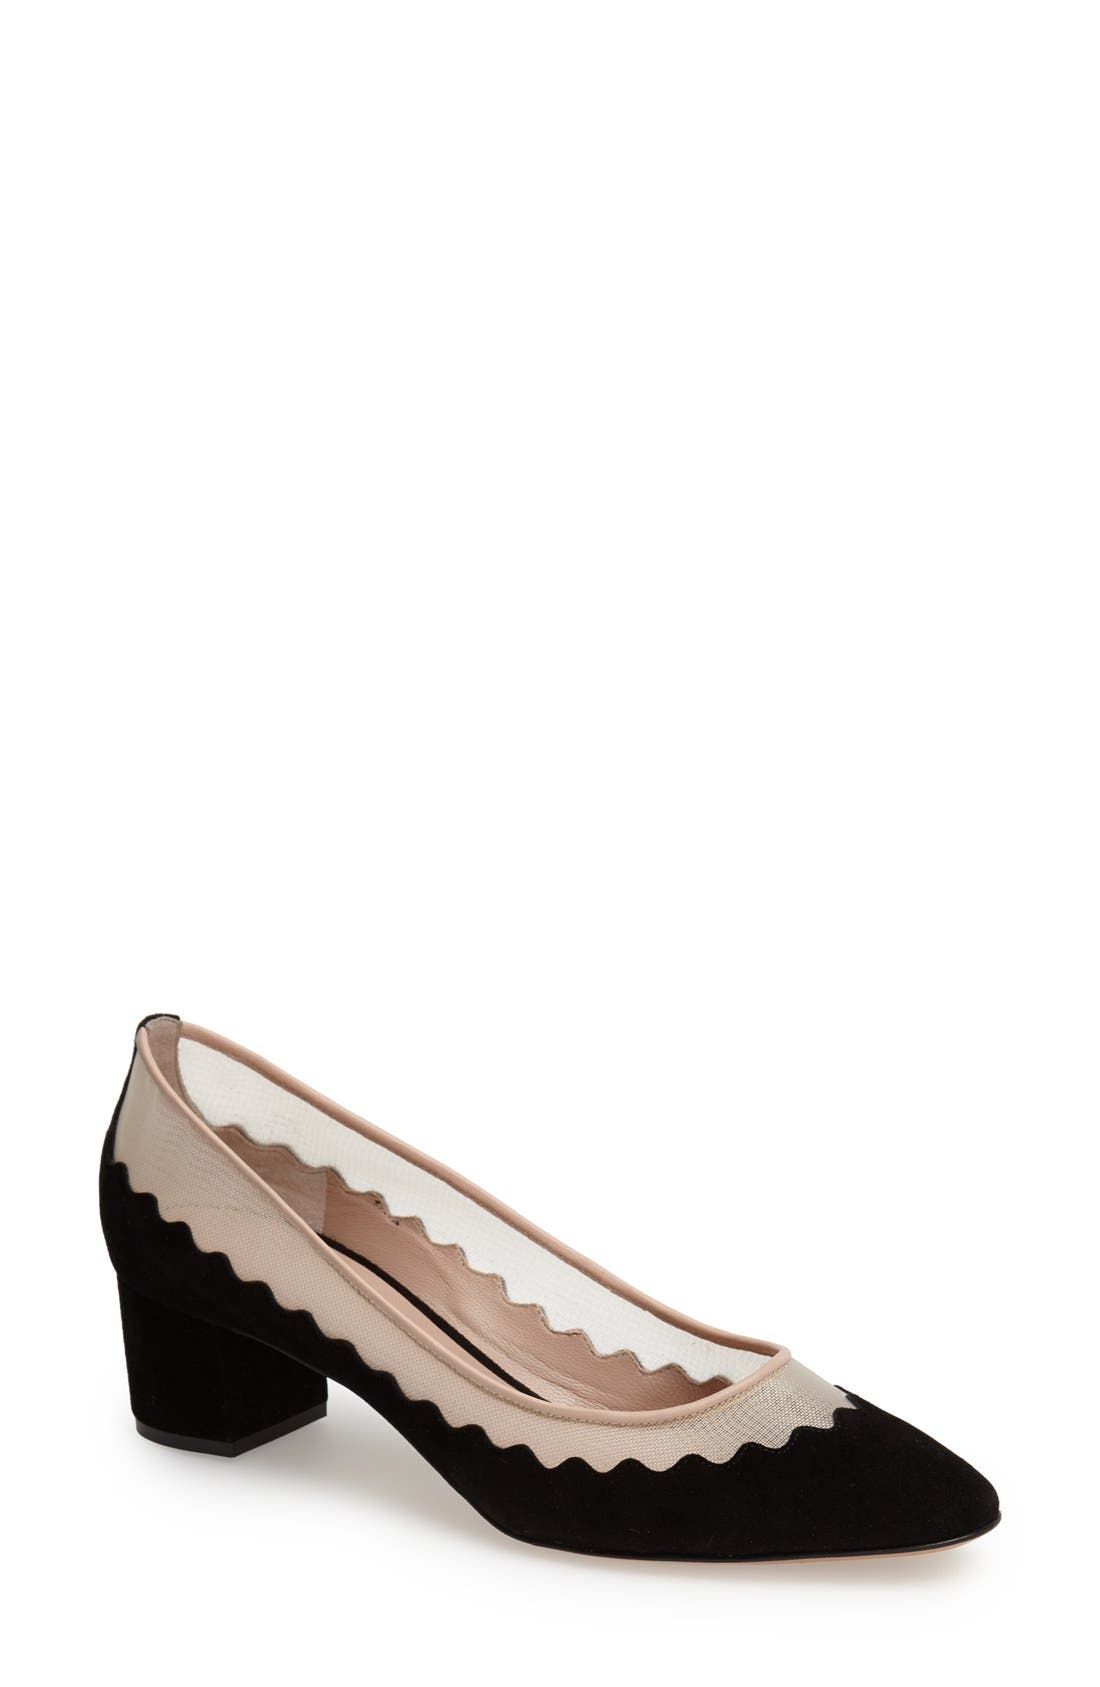 Alternate Image 1 Selected - Chloé 'Bridget' Scalloped Almond Toe Pump (Women)